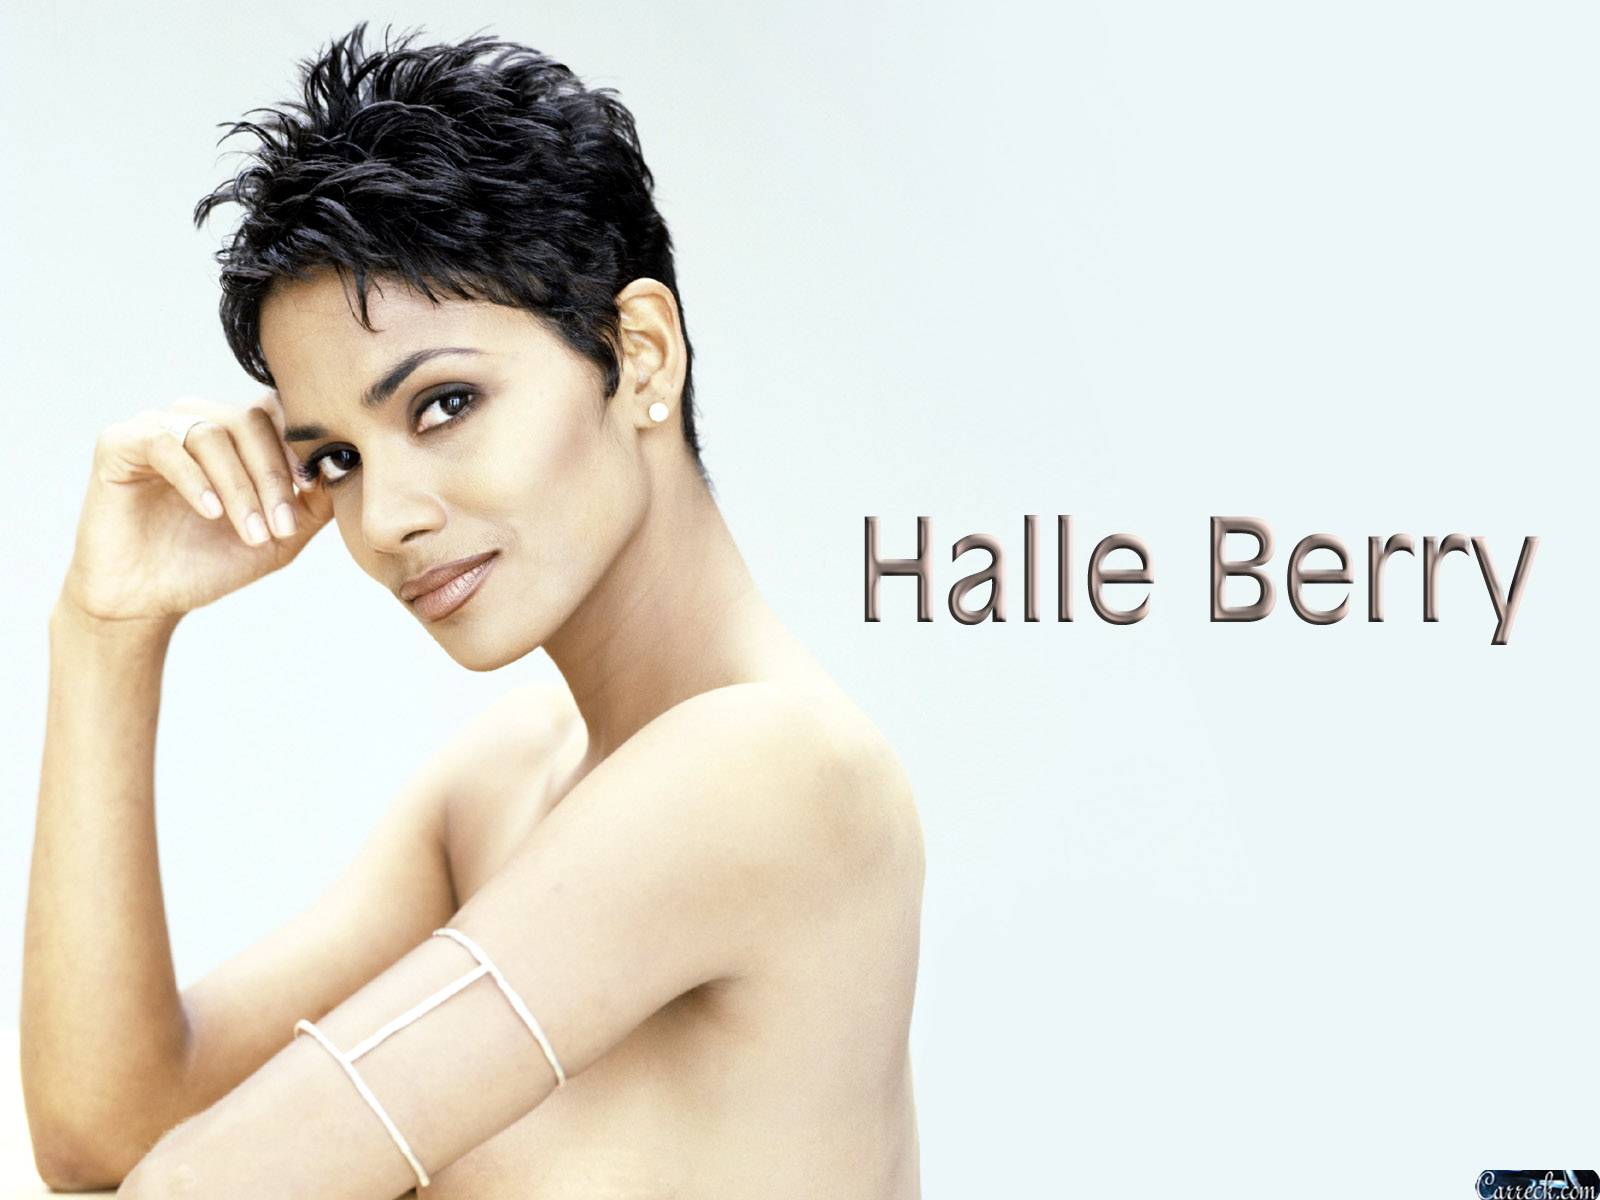 Nude photos of halle berry picture 37